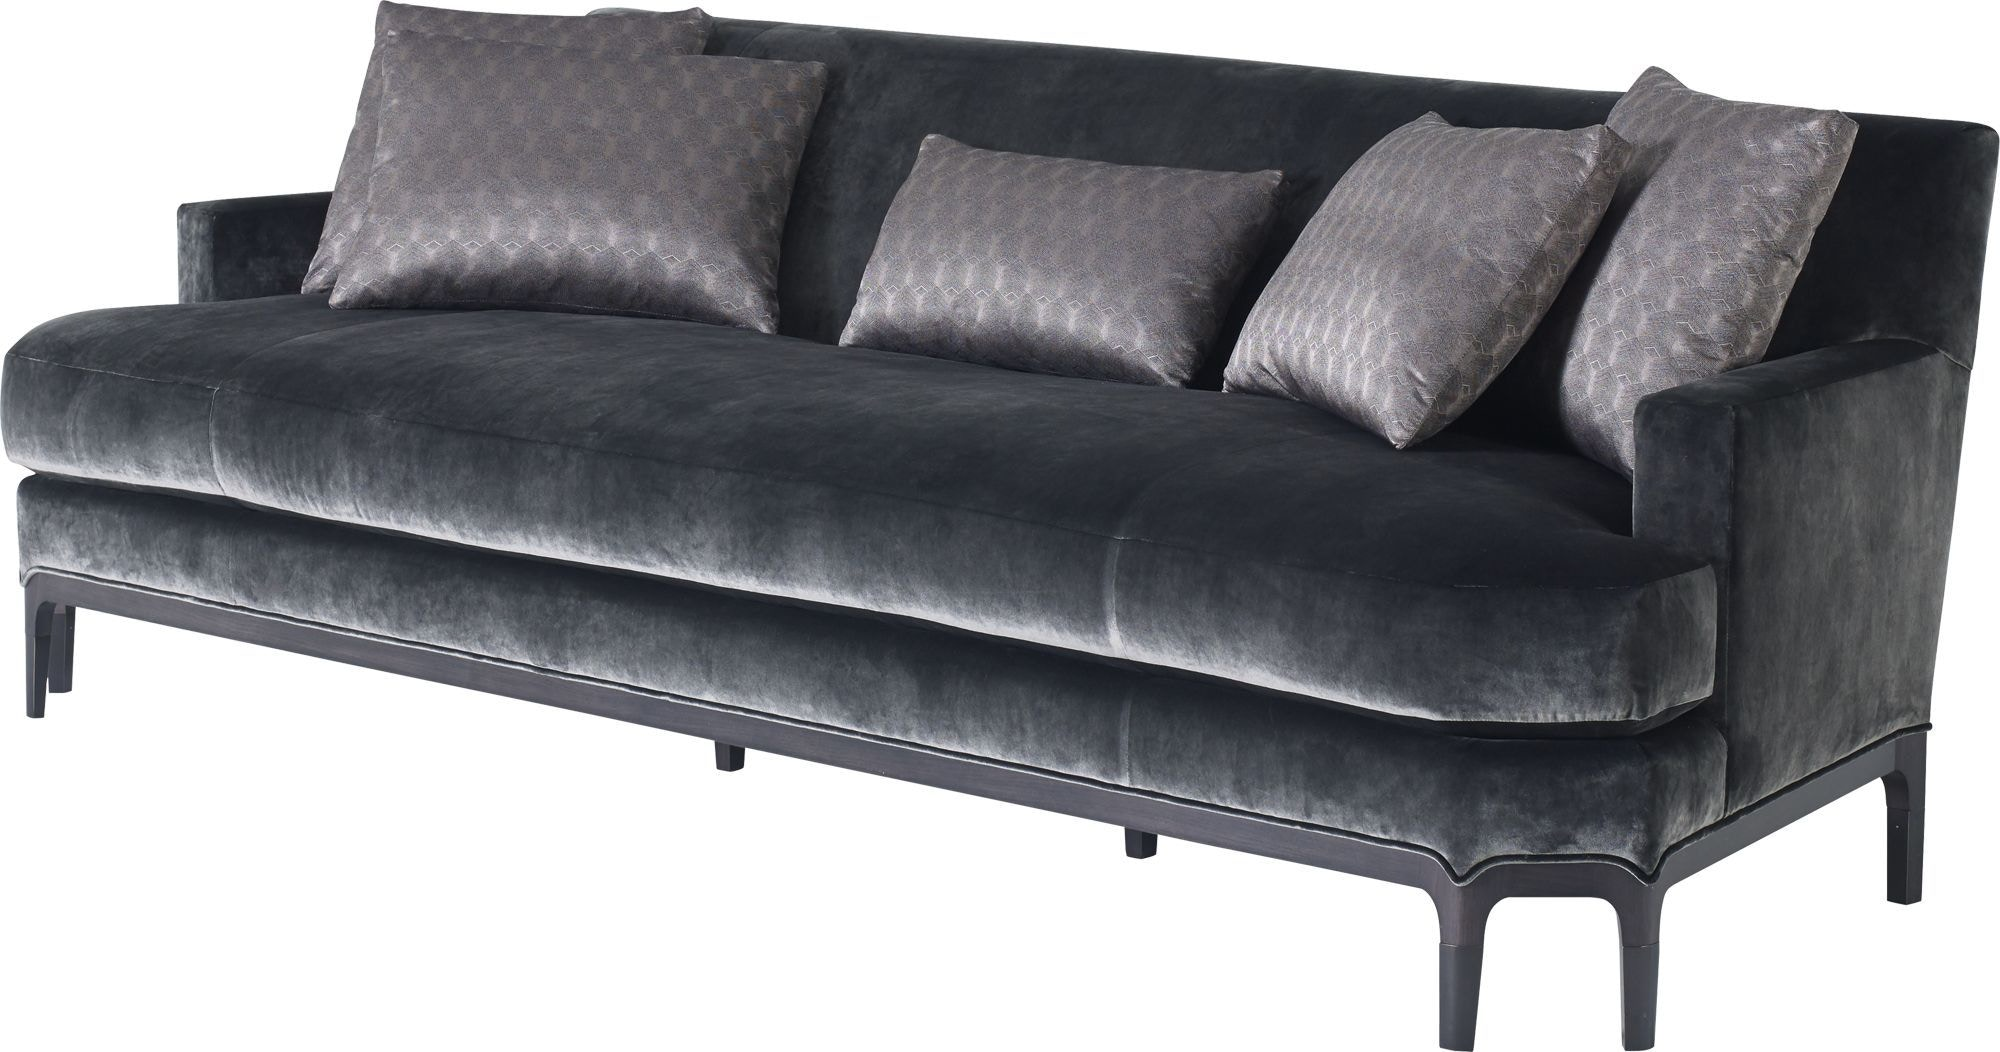 Genial Baker Celestite Sofa BKR6179S From Walter E. Smithe Furniture + Design